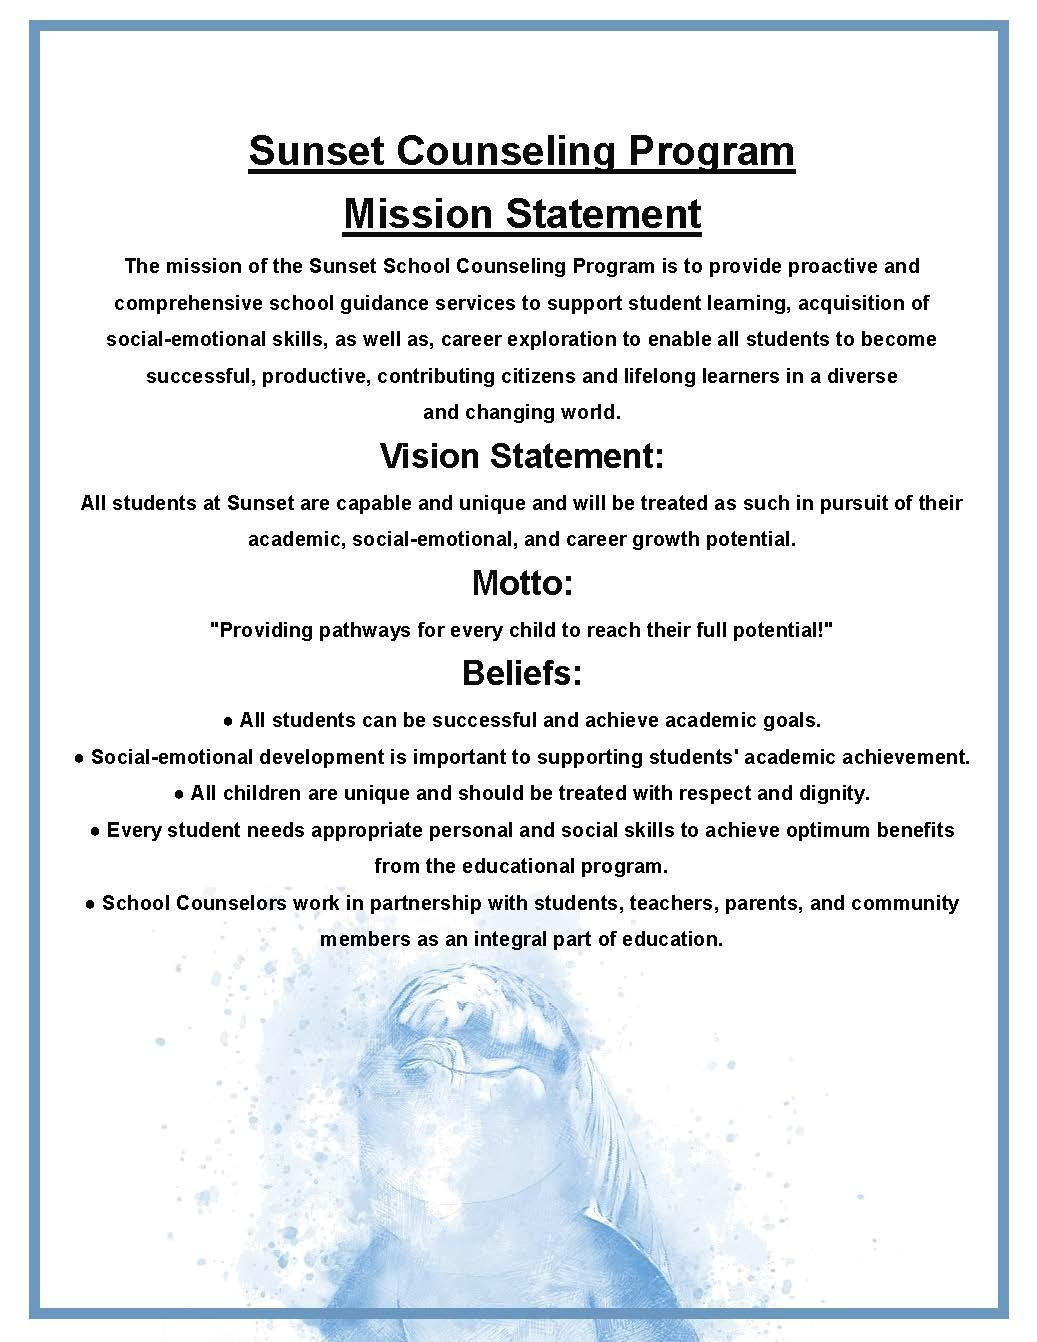 Updated Sunset Counseling Mission Statement